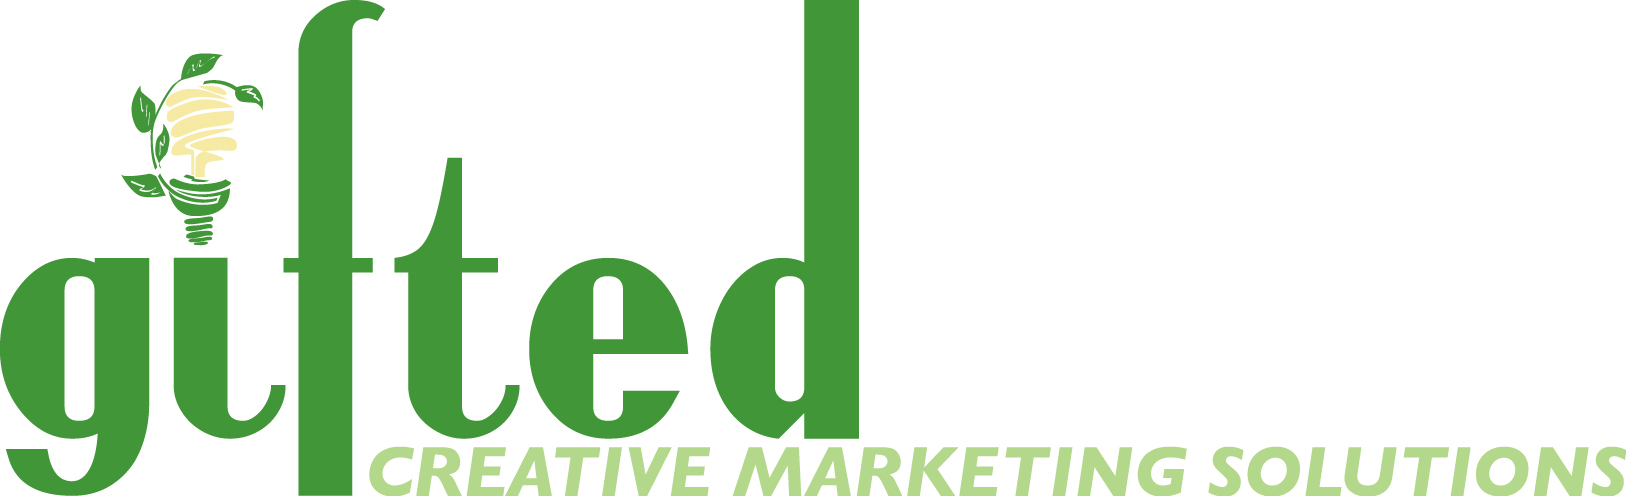 Gifted Creative Marketing Solutions